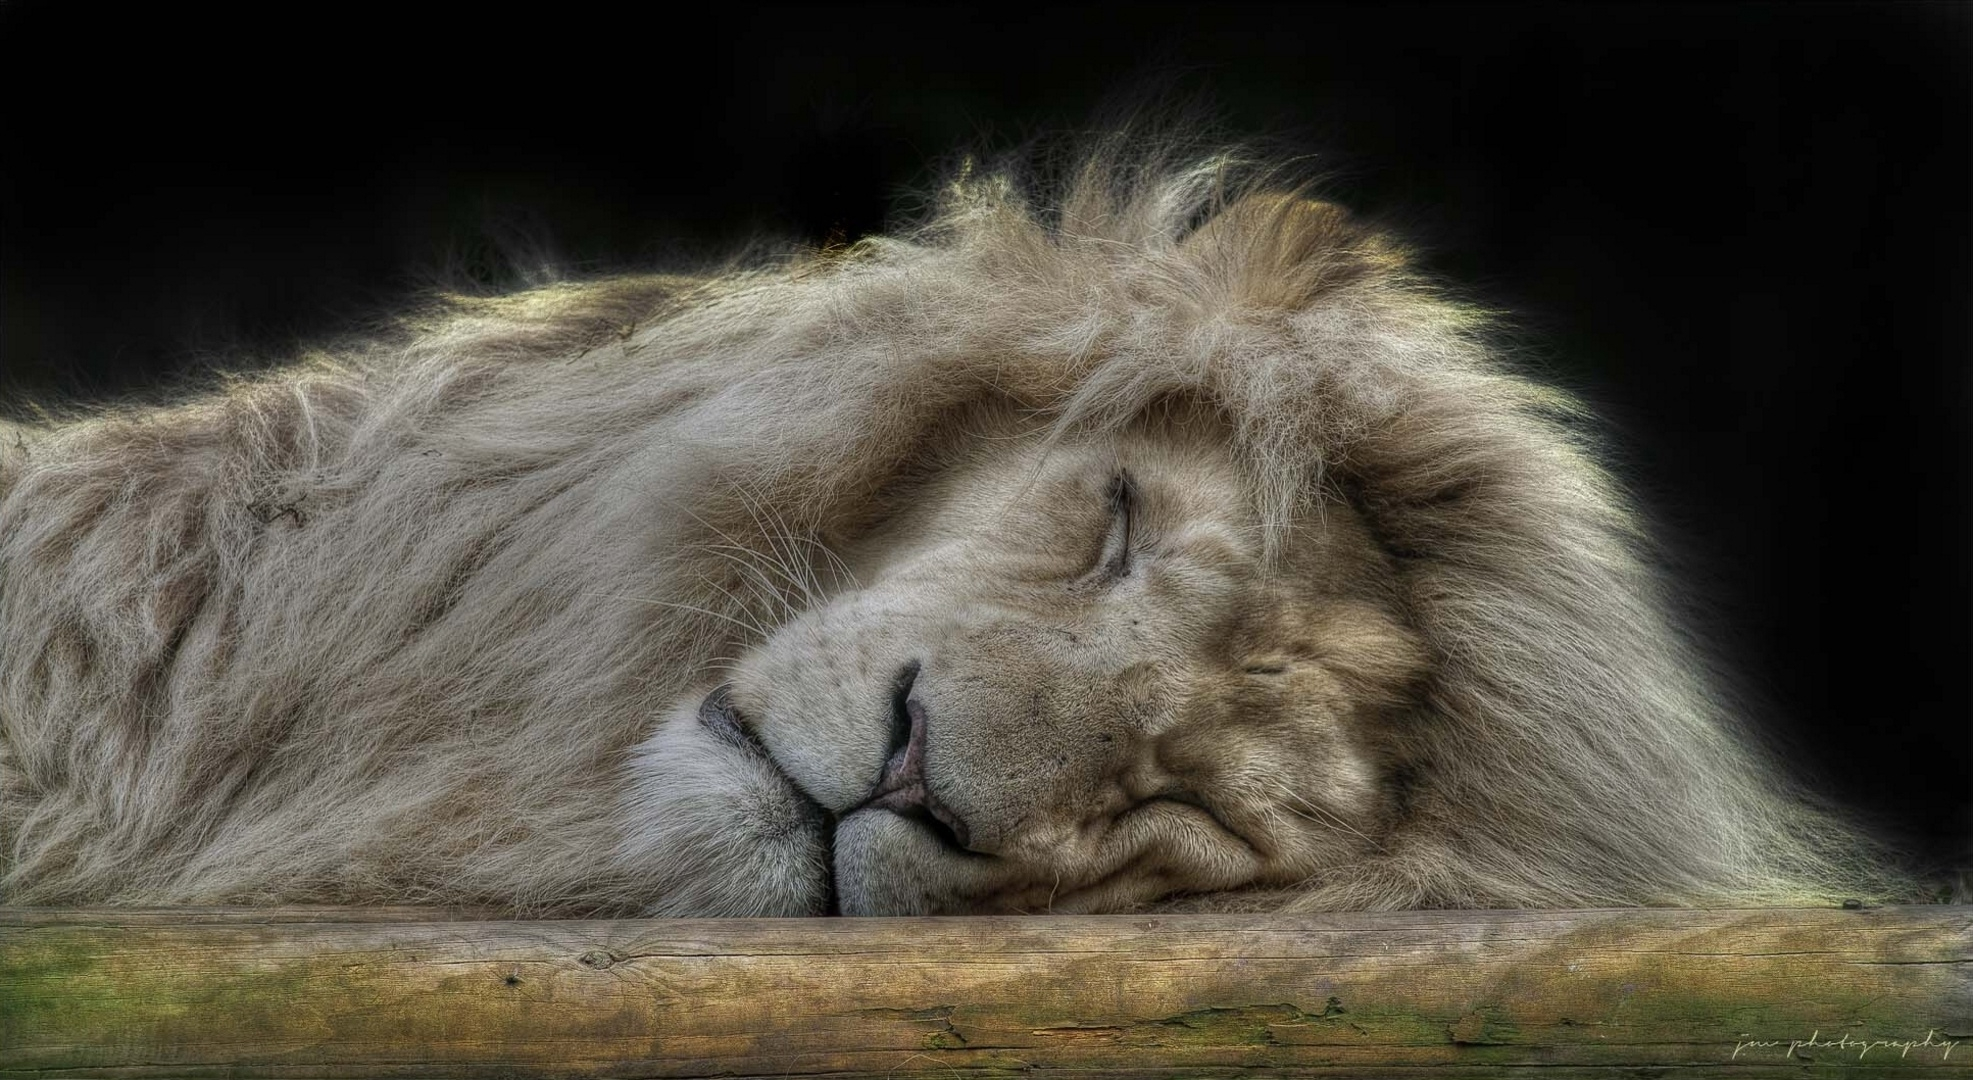 103363 download wallpaper Animals, Lion, Muzzle, Sleep, Dream, Fluffy, Big Cat, Predator screensavers and pictures for free